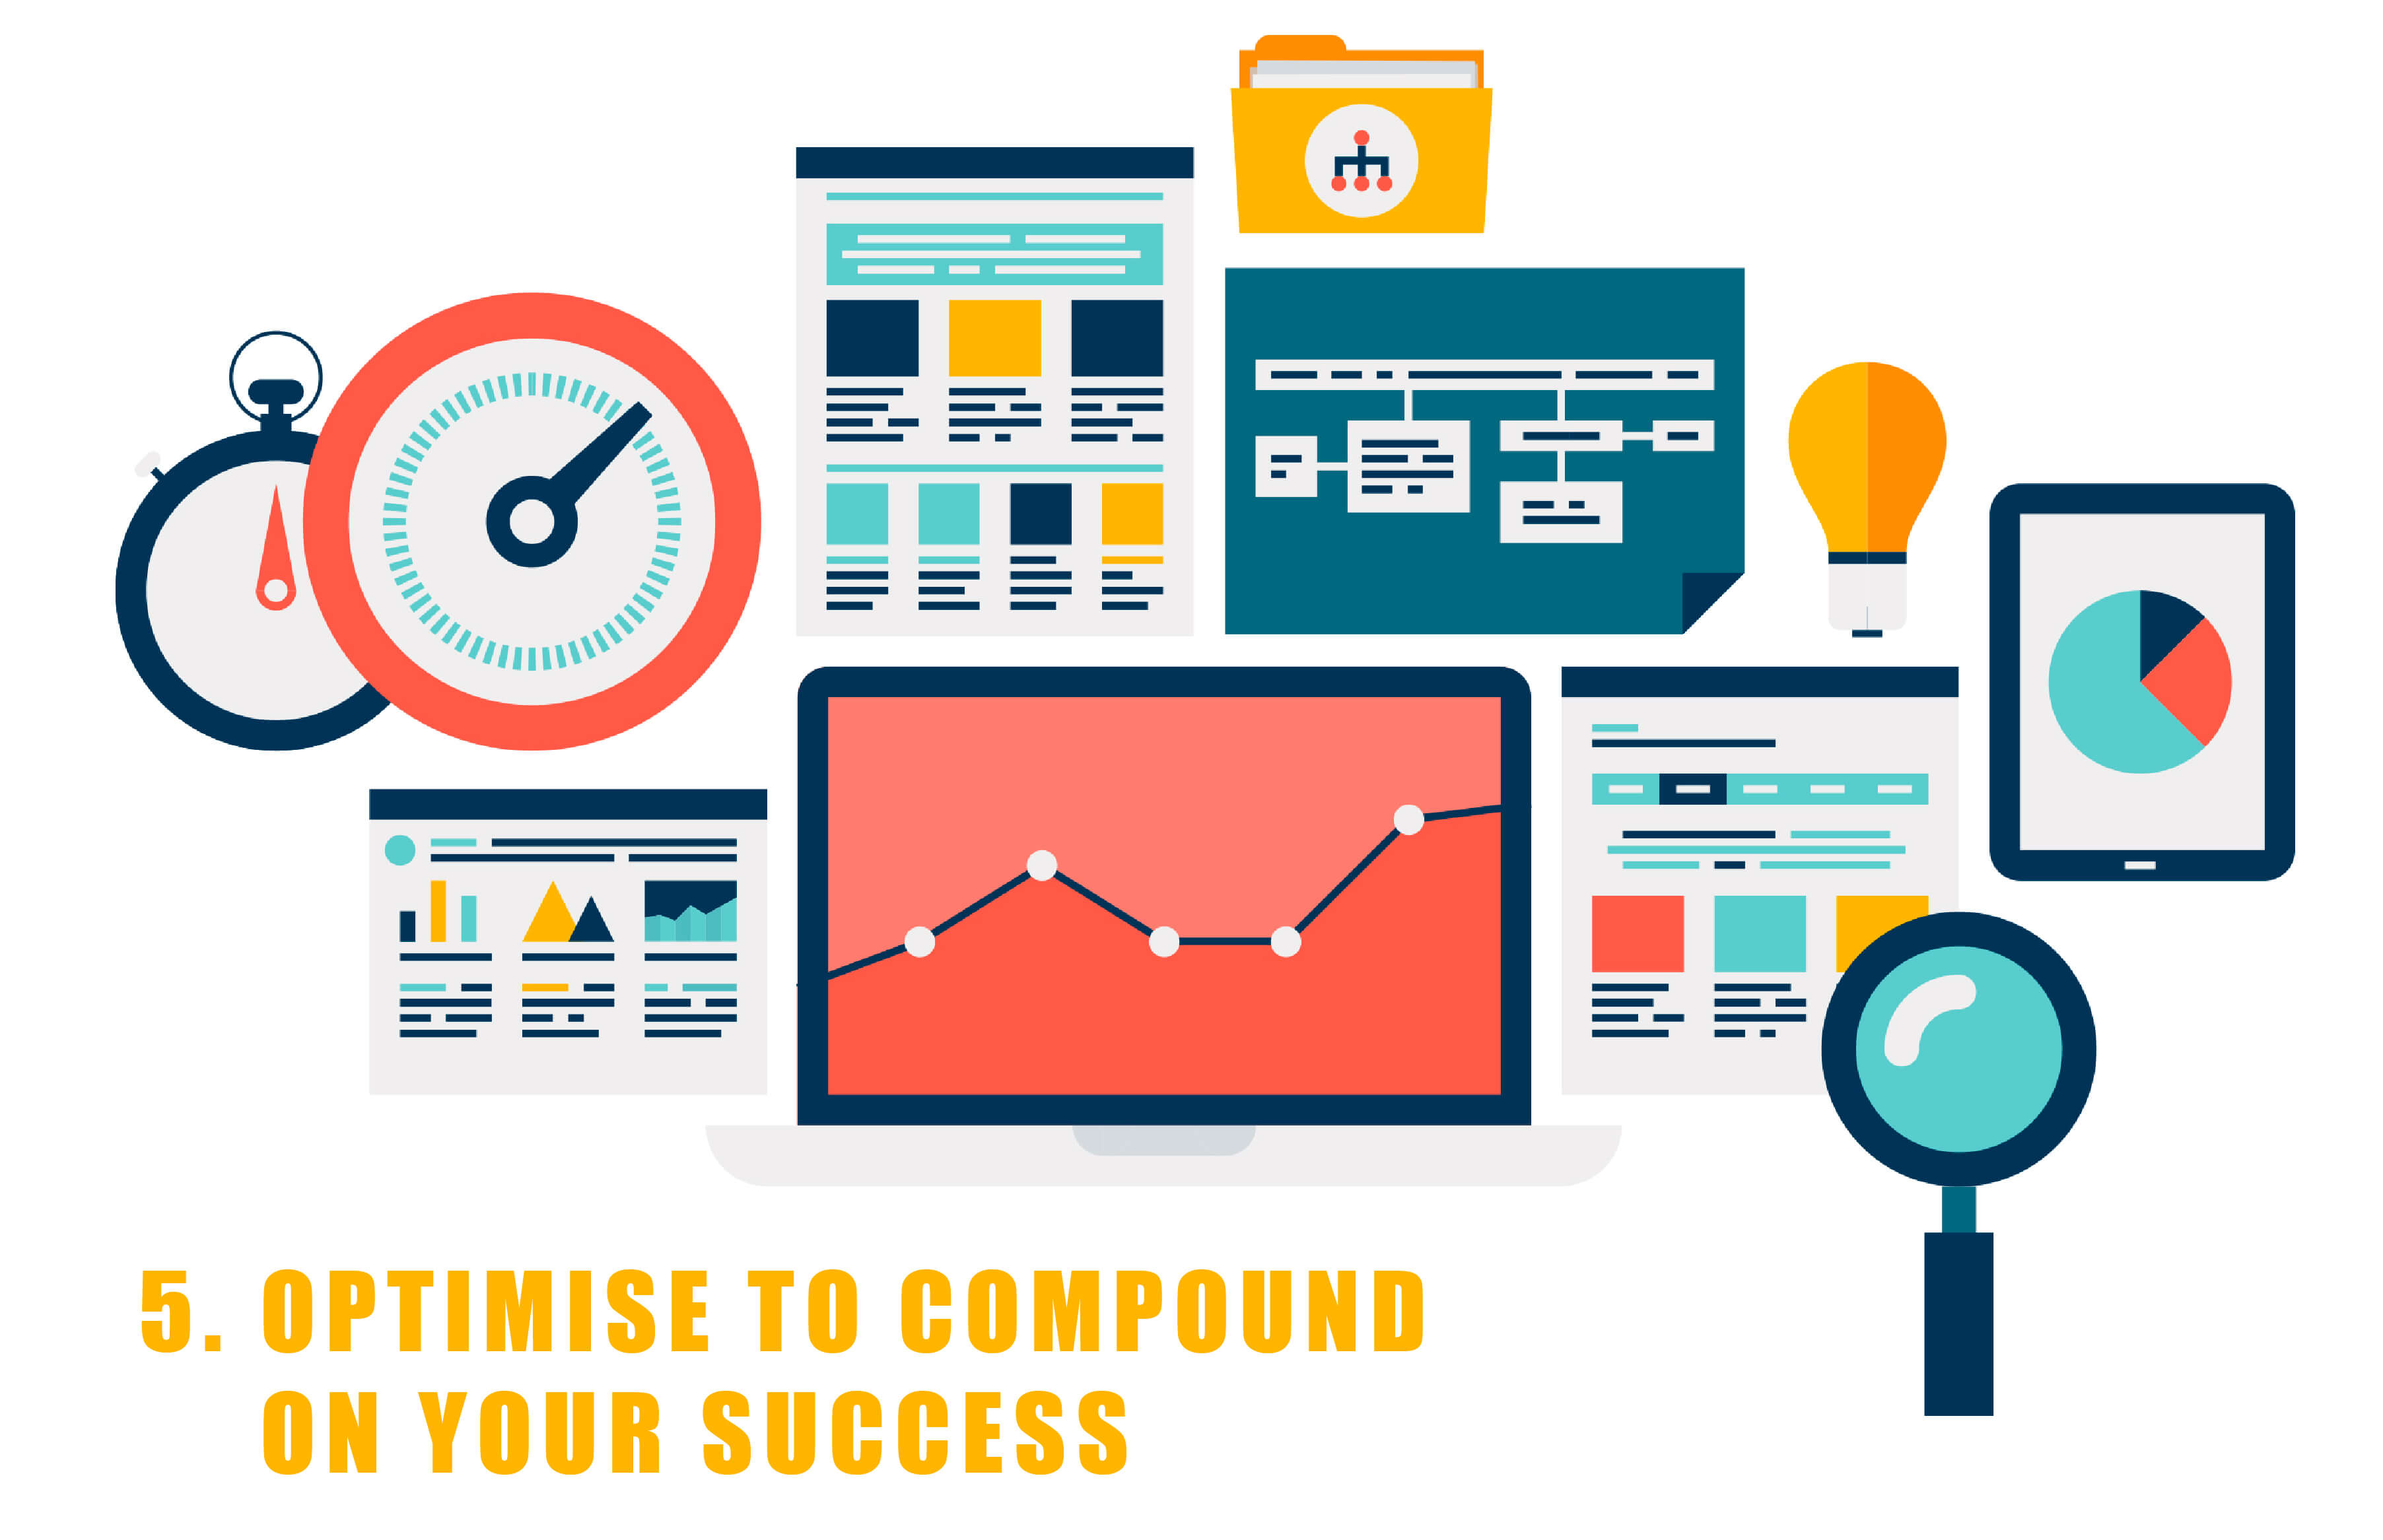 5 ways to build a digital presence for your business - optimise to compound success